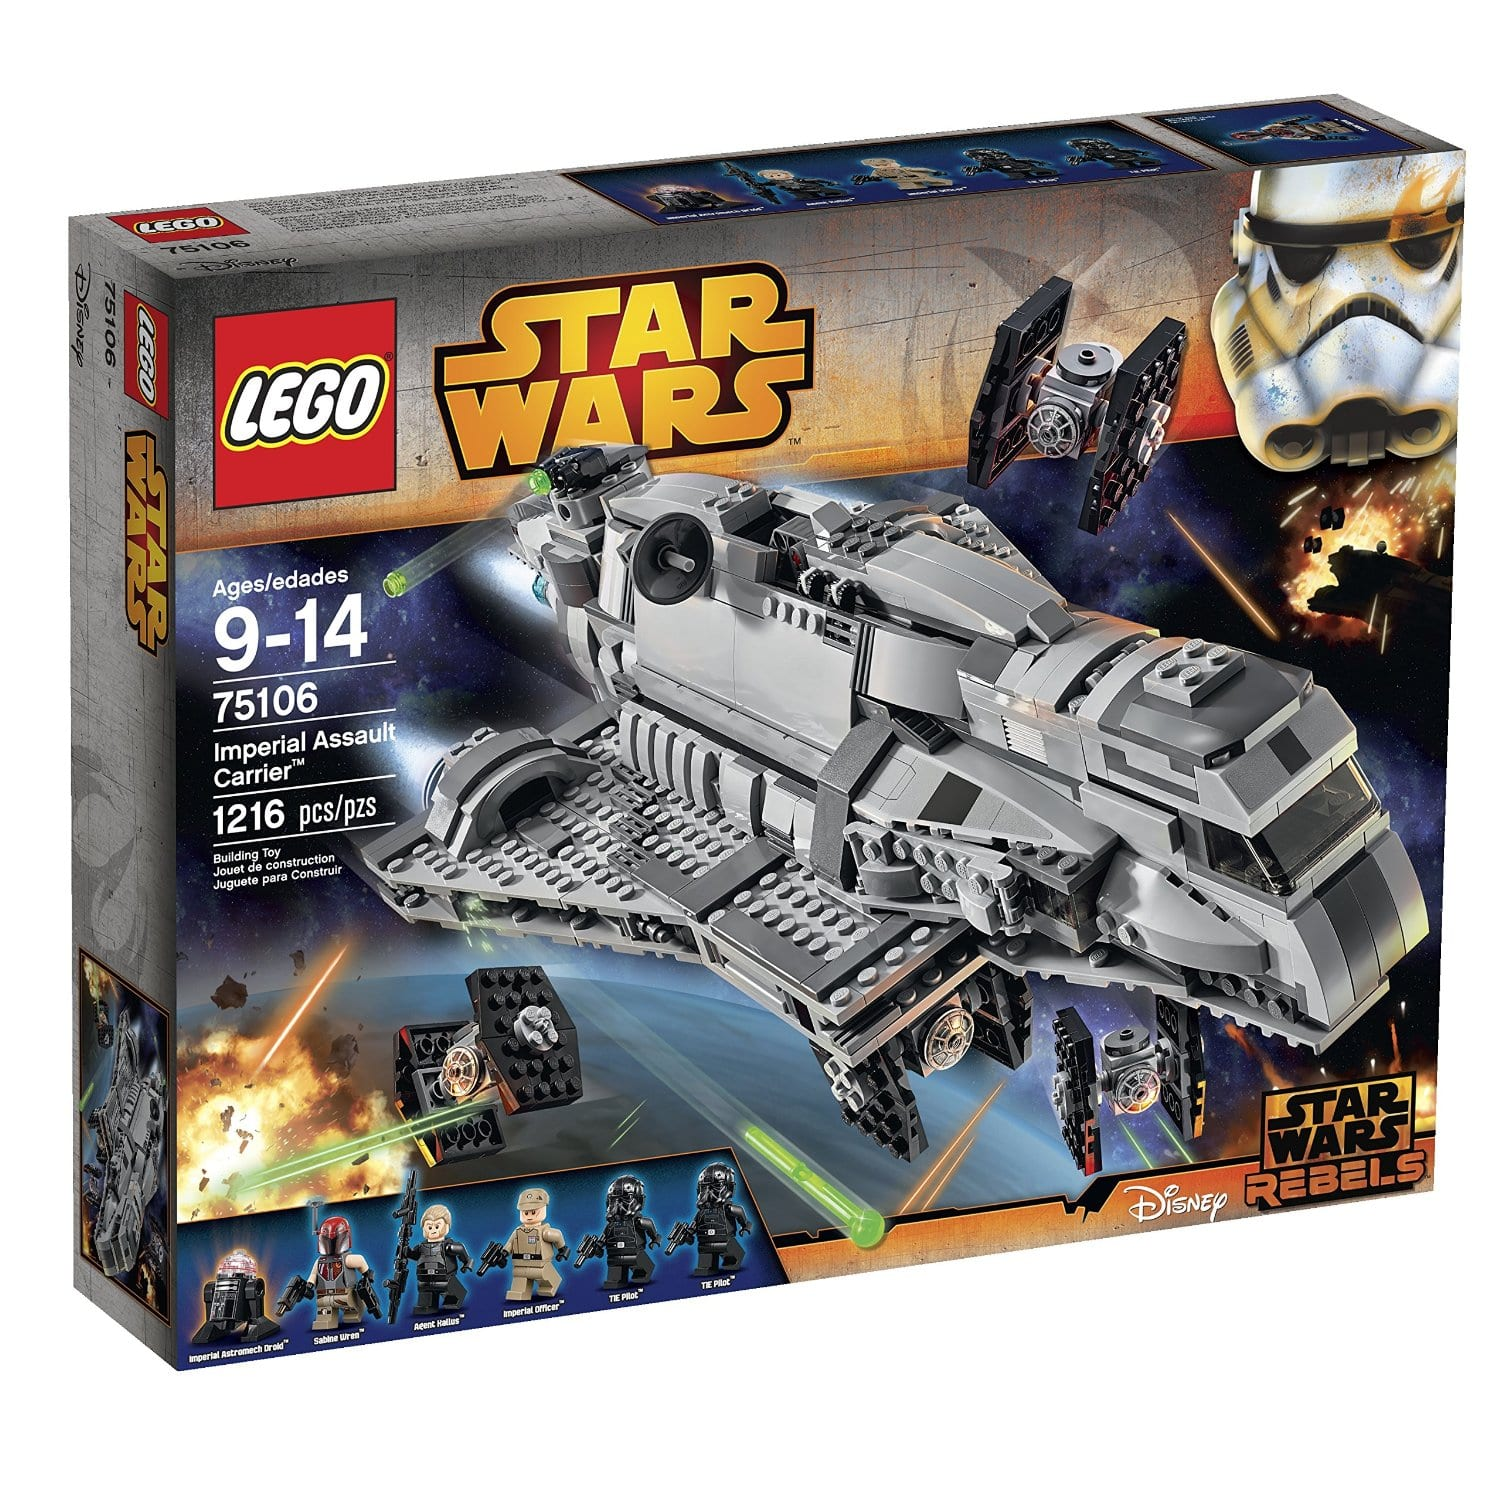 LEGO Star Wars Imperial Assault Carrier 75106 Building Kit $81.89  + FS @Amazon